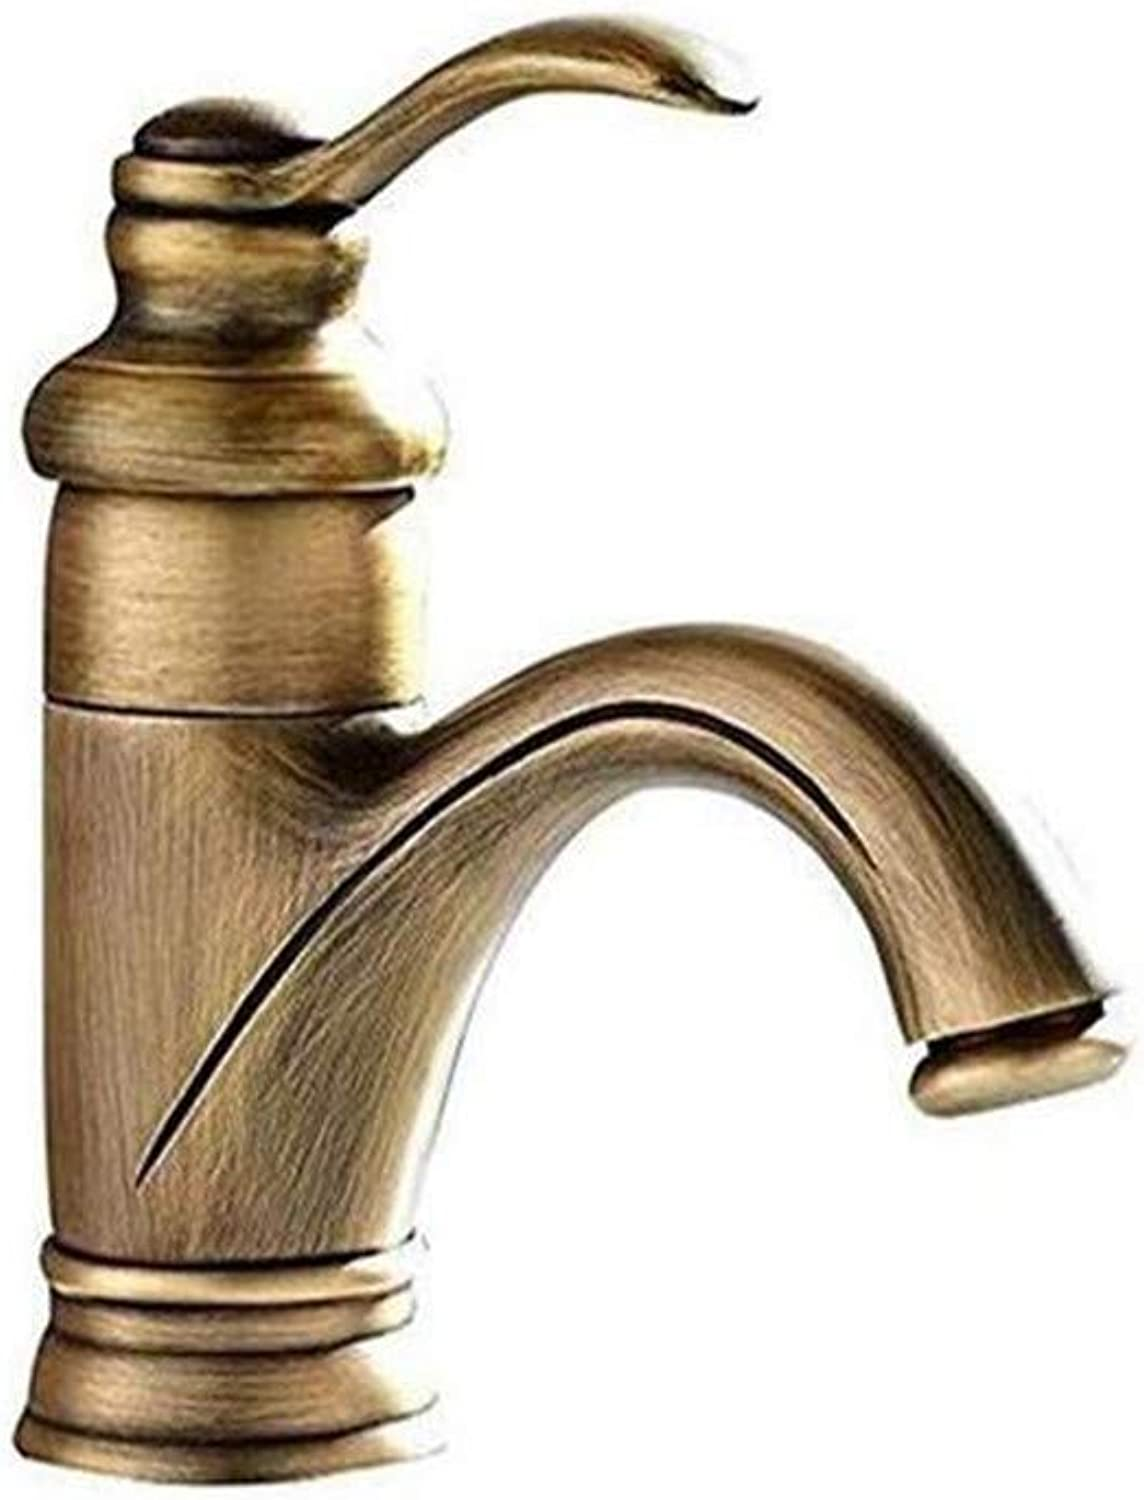 Kitchen Bath Basin Sink Bathroom Taps Brass Single Handle Hot and Cold Mixer Taps Single Hole Mixer Ctzl2913